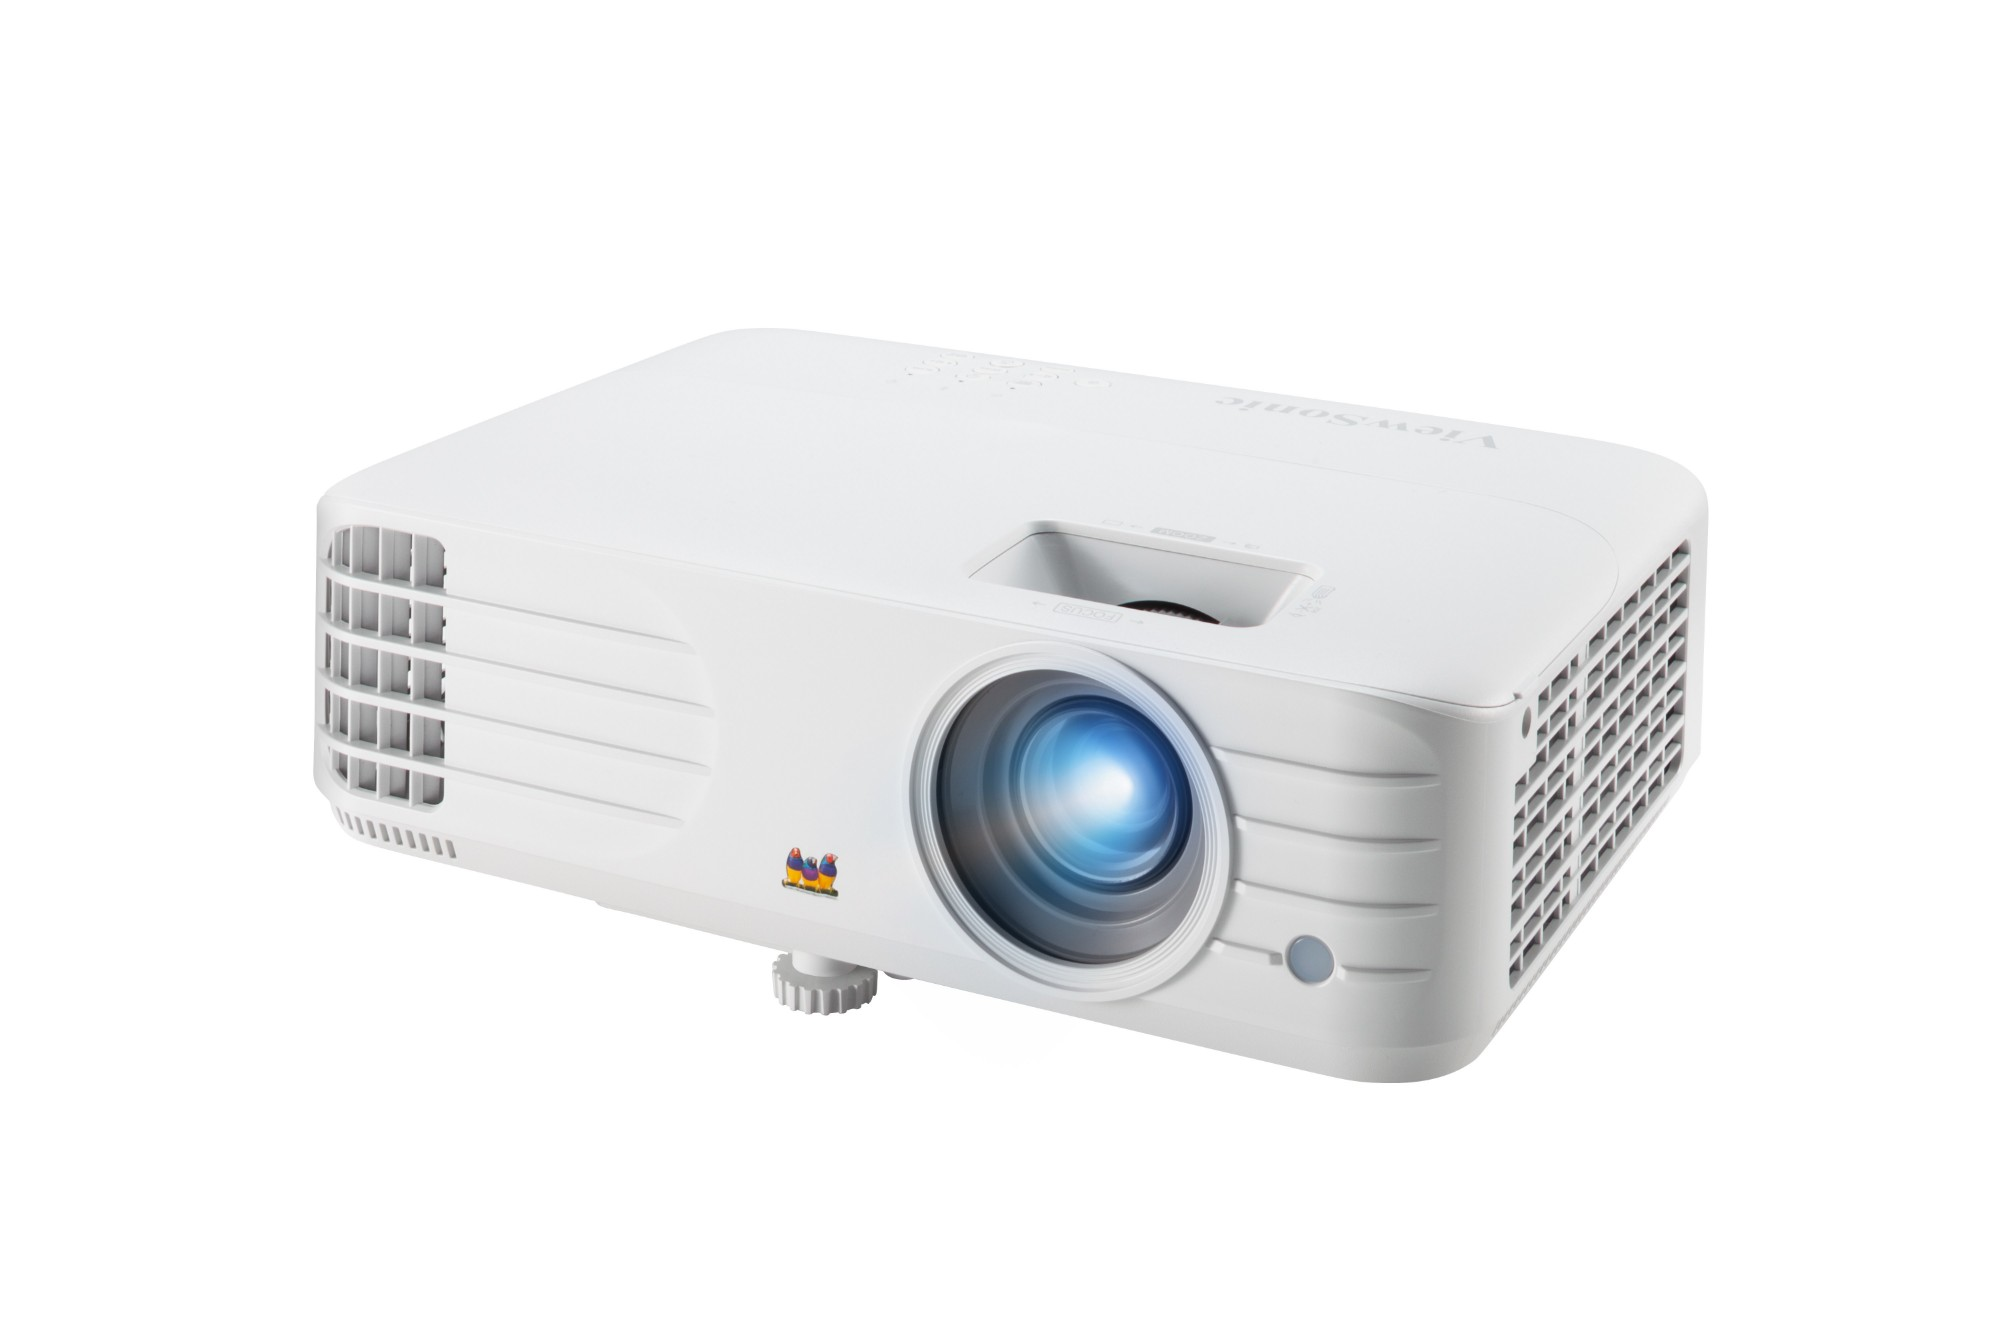 Viewsonic PX701HD data projector 3500 ANSI lumens DMD 1080p (1920x1080) 3D Desktop projector White